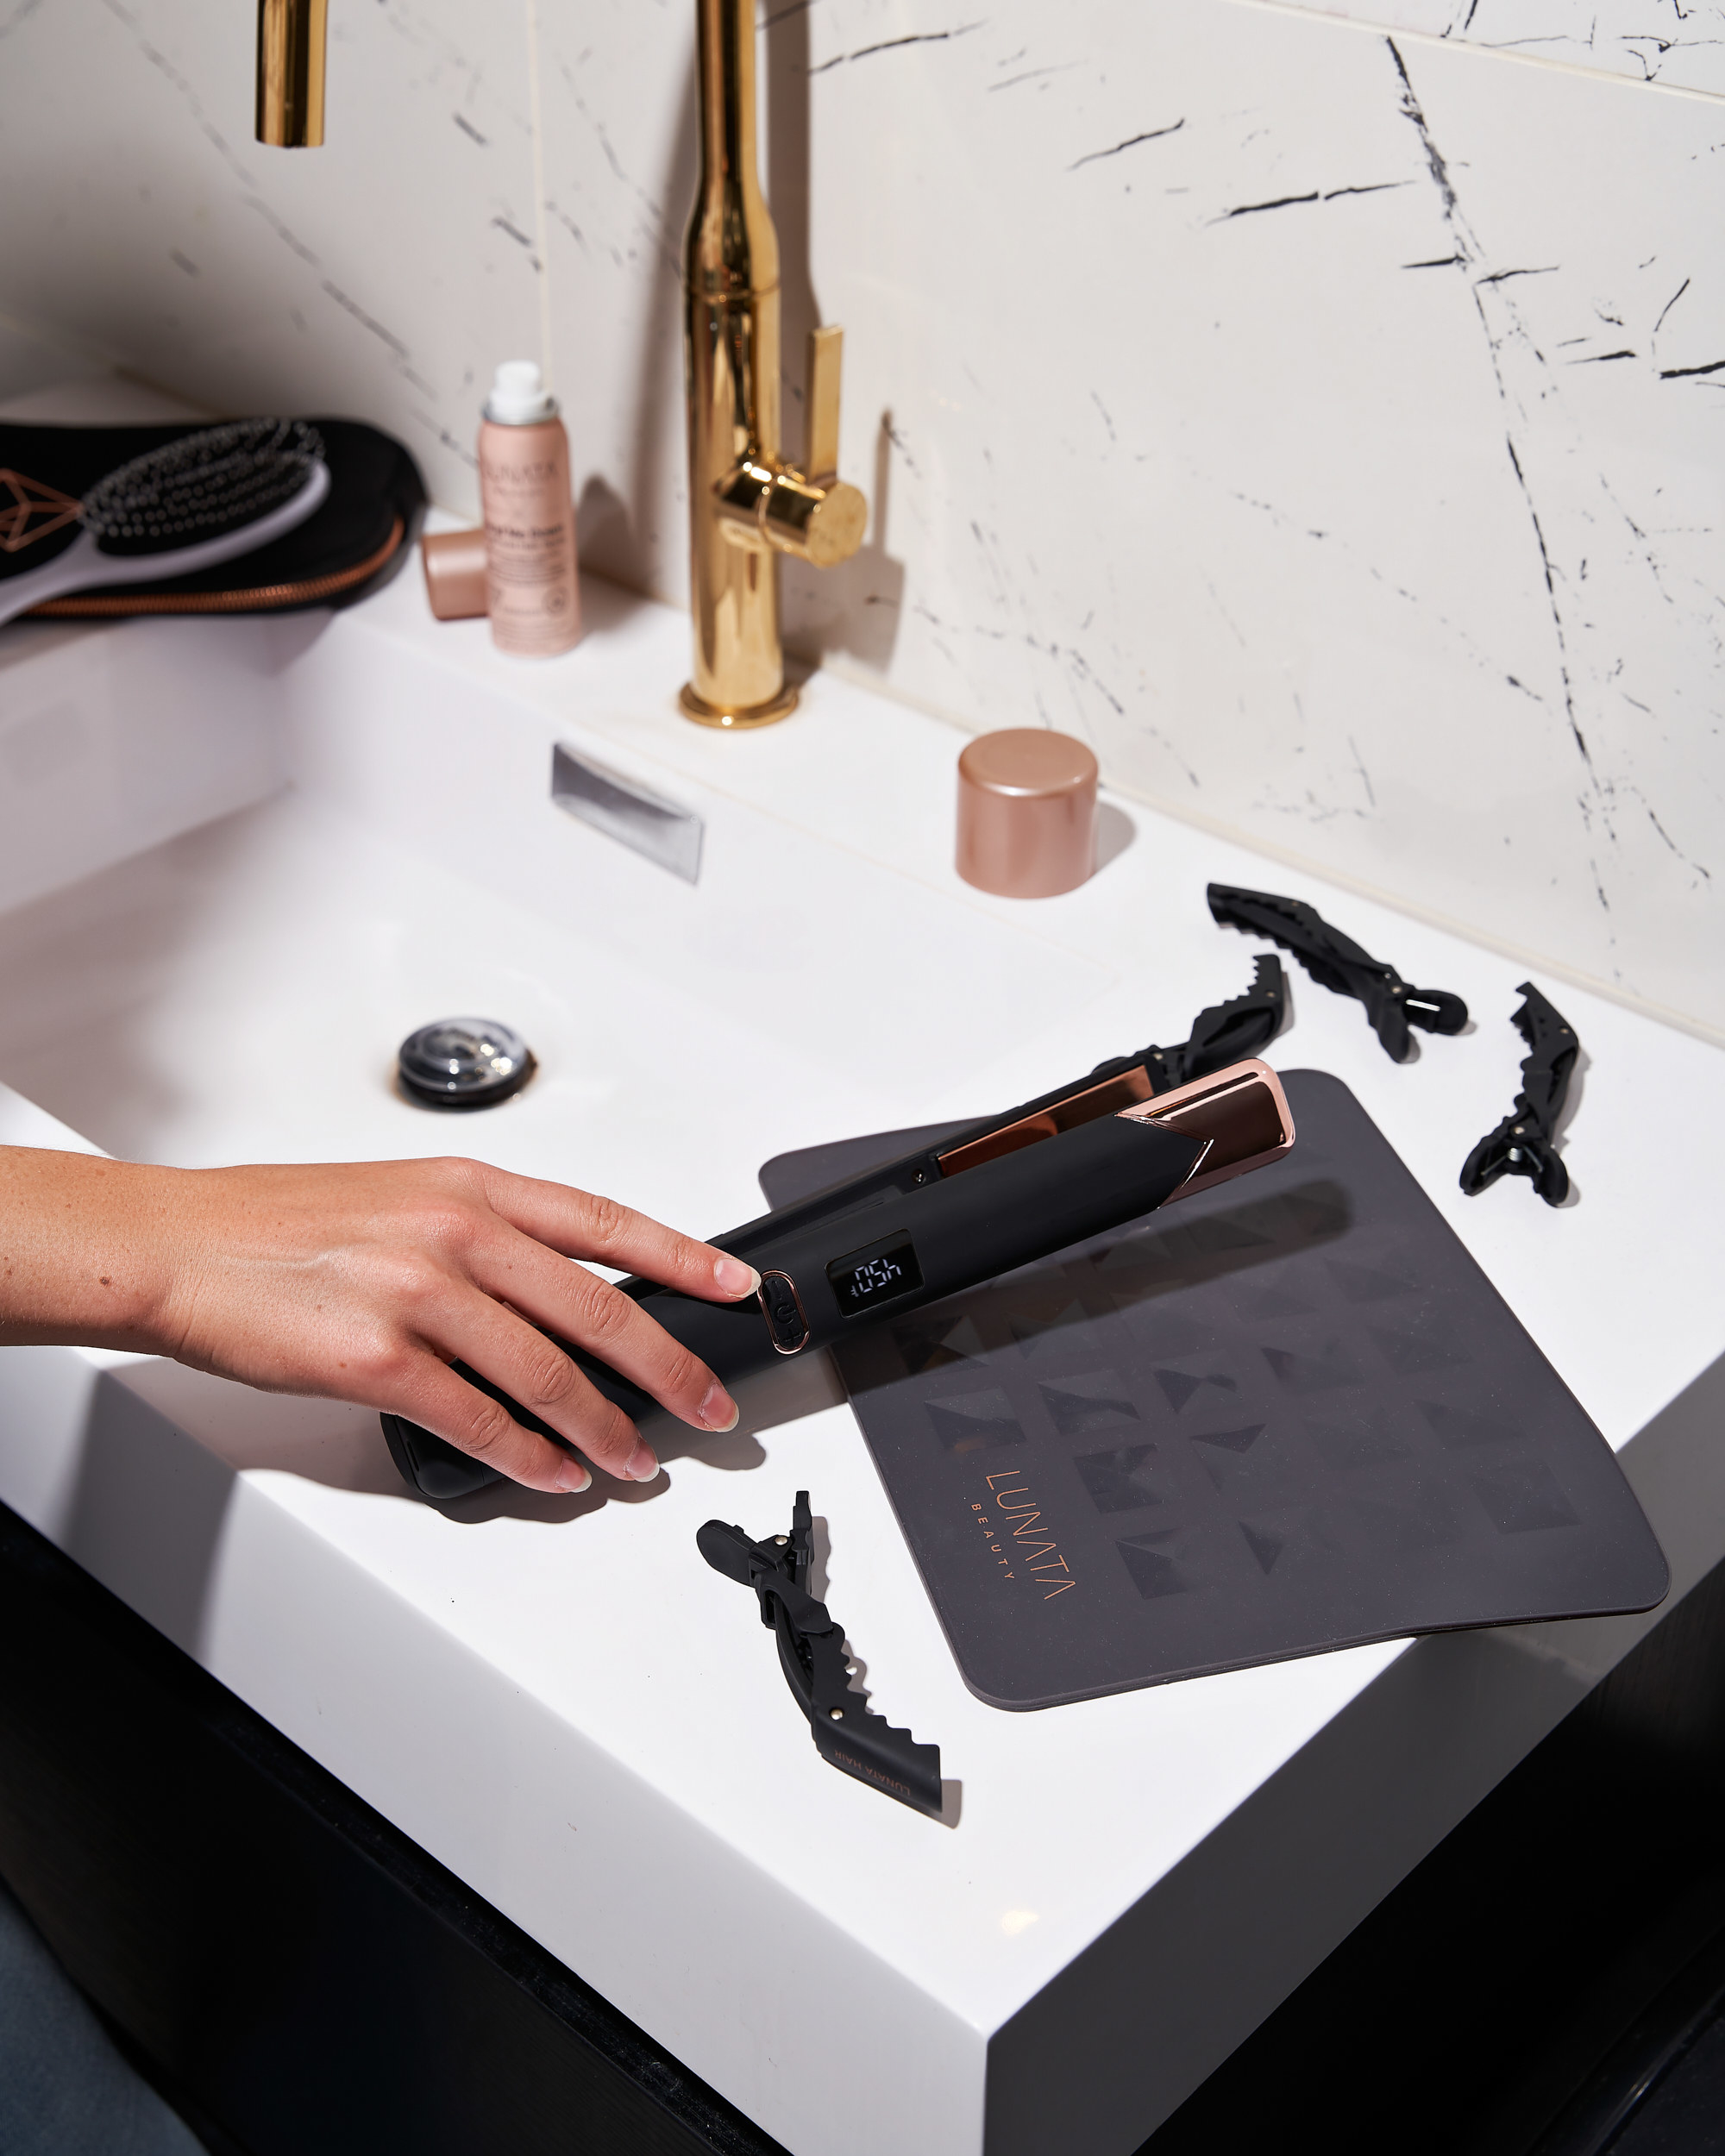 Manicured hand holds black Lunata Flat Iron Styler Plus + over a white sink